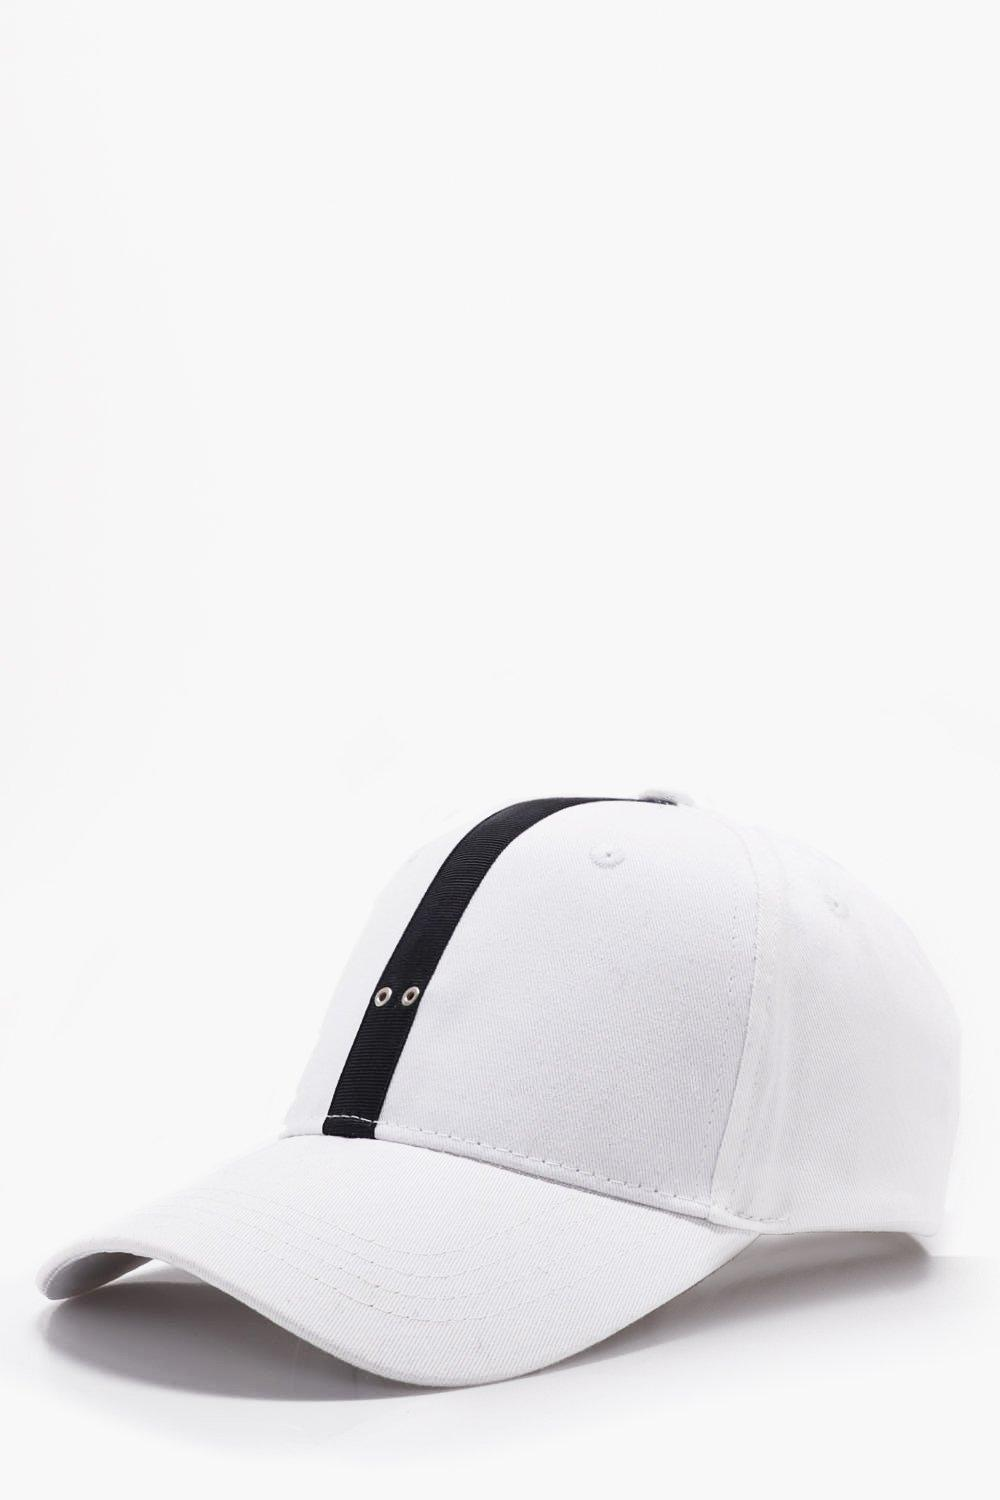 Stripe Cap - white - Grosgrain Stripe Cap - white